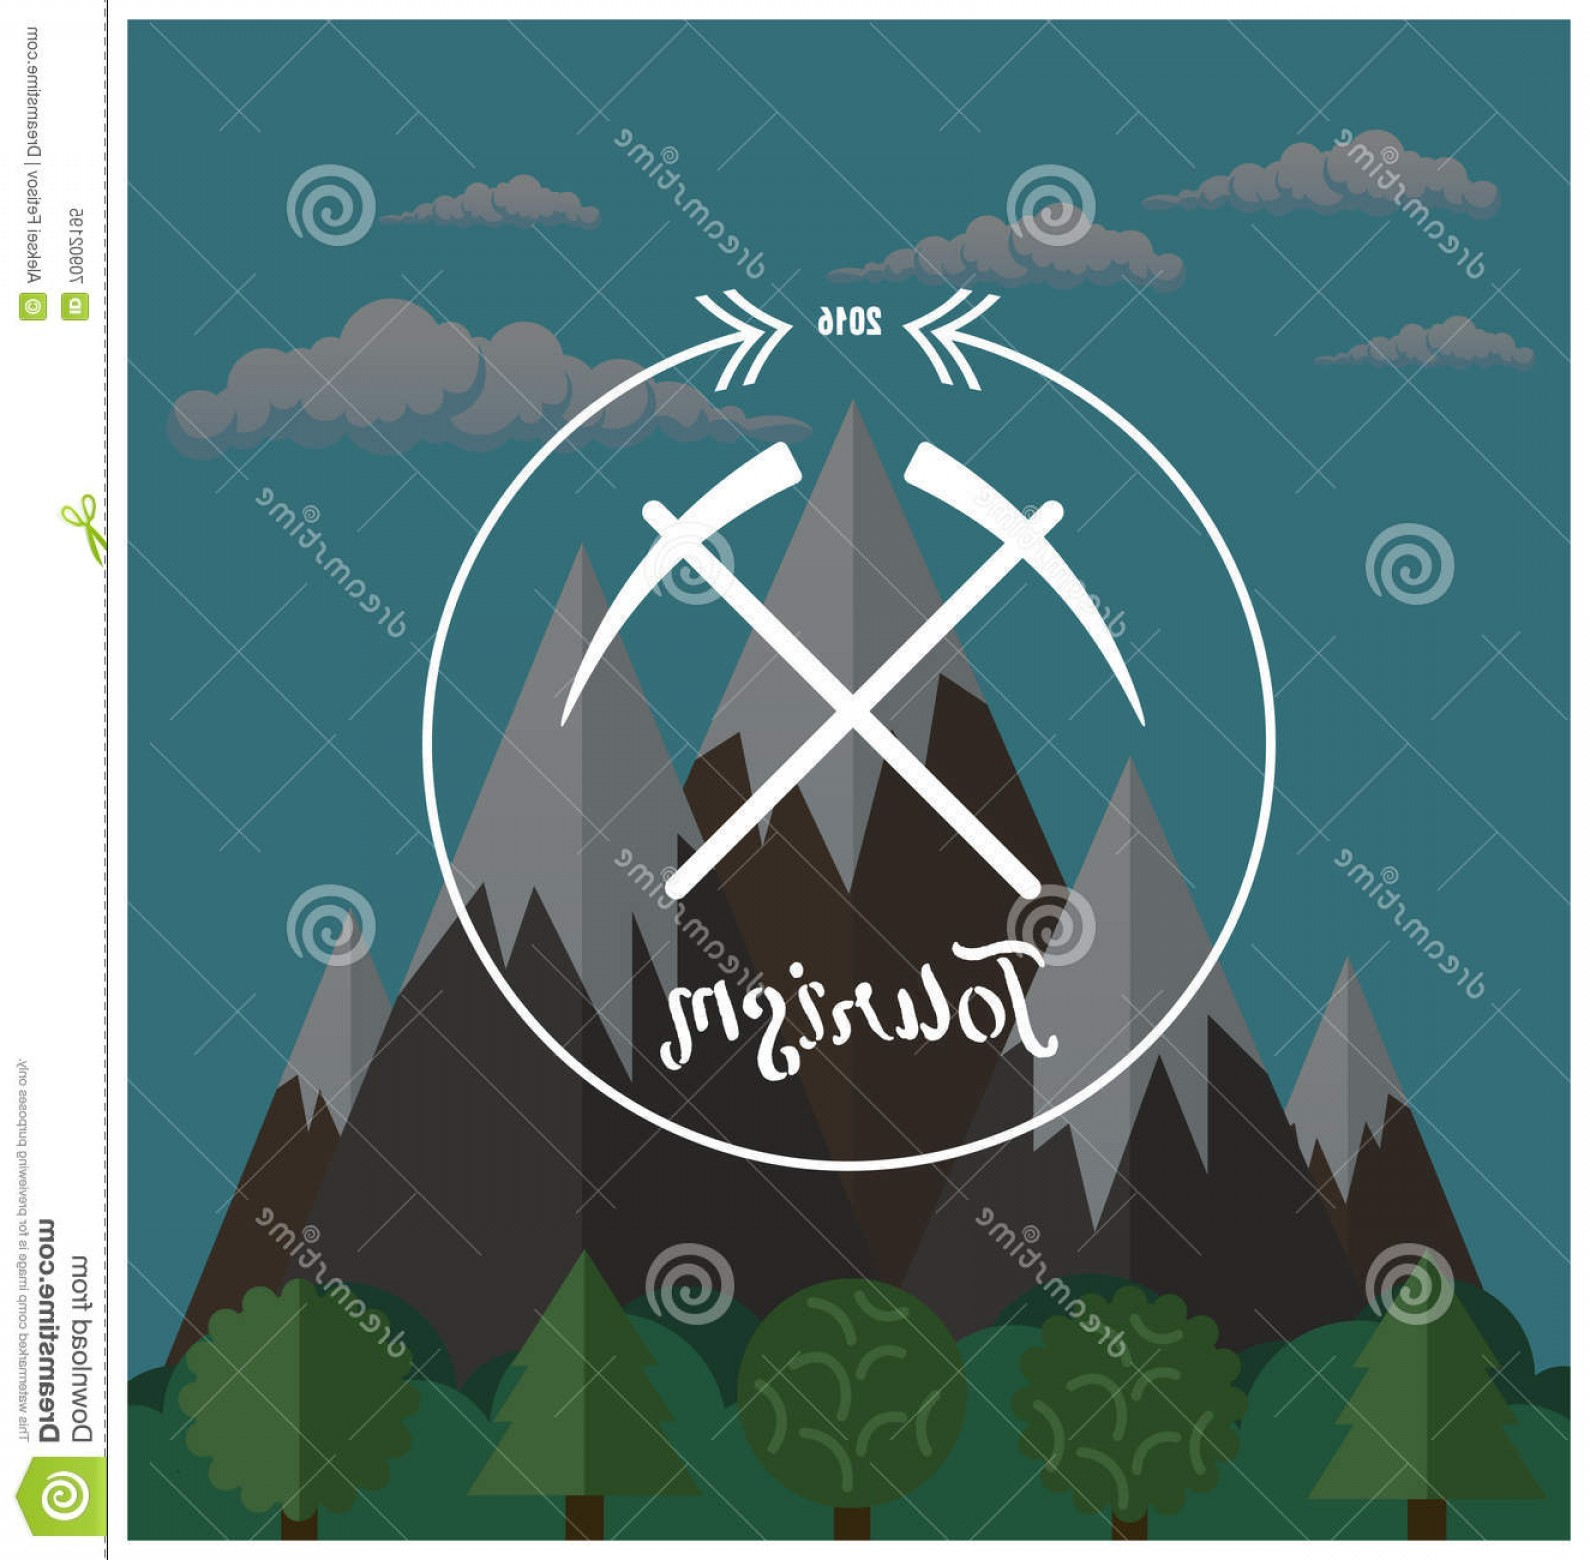 Hipster Logo Vectors Mountain: Stock Illustration Hipster Logo Summer Camp Concept Mountain Nature Landscape Vector Image